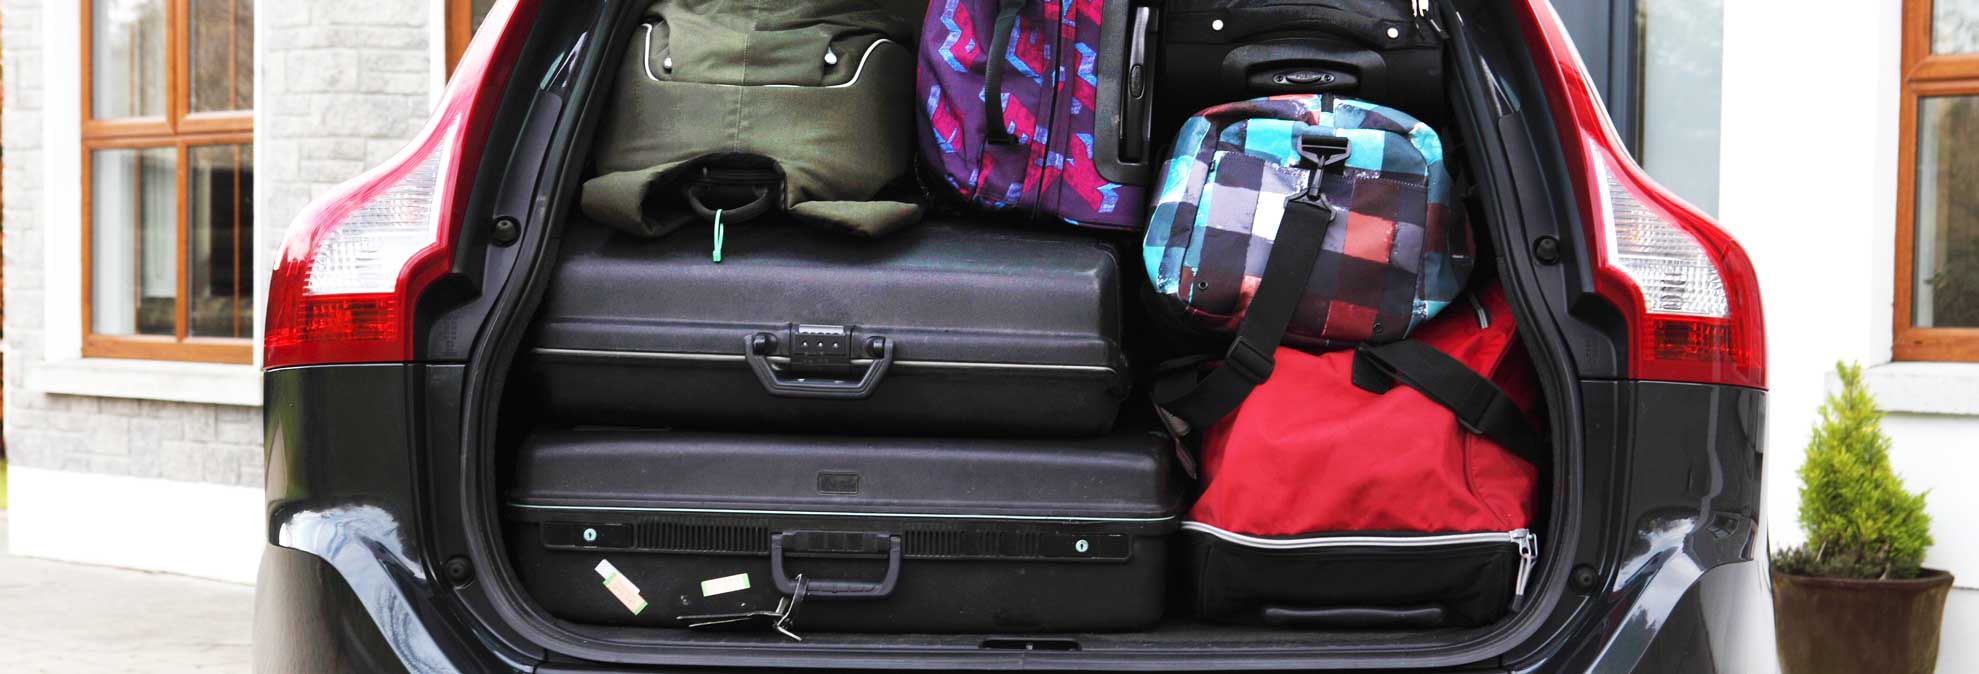 Choosing Between Hard Sided And Soft Sided Luggage